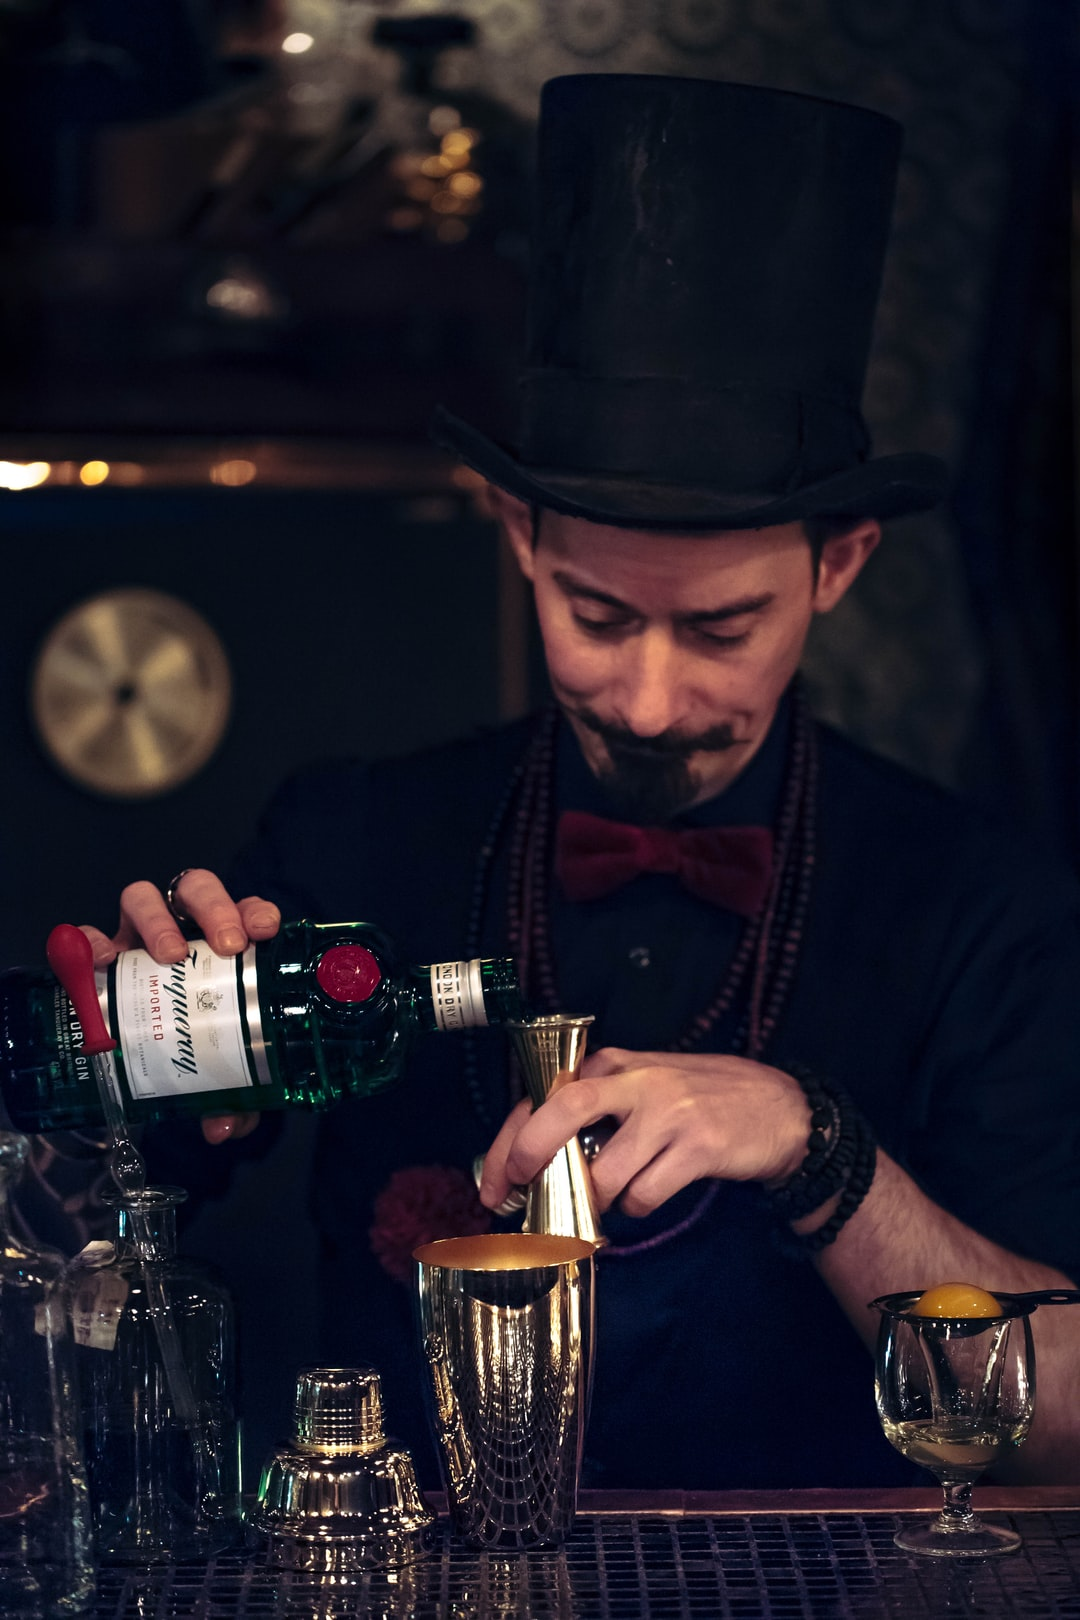 Chris, a French magician is the mastermind behind L'EscaMoteur in Kyoto. He designed the speakeasy himself, and his drink creations are out of this world.